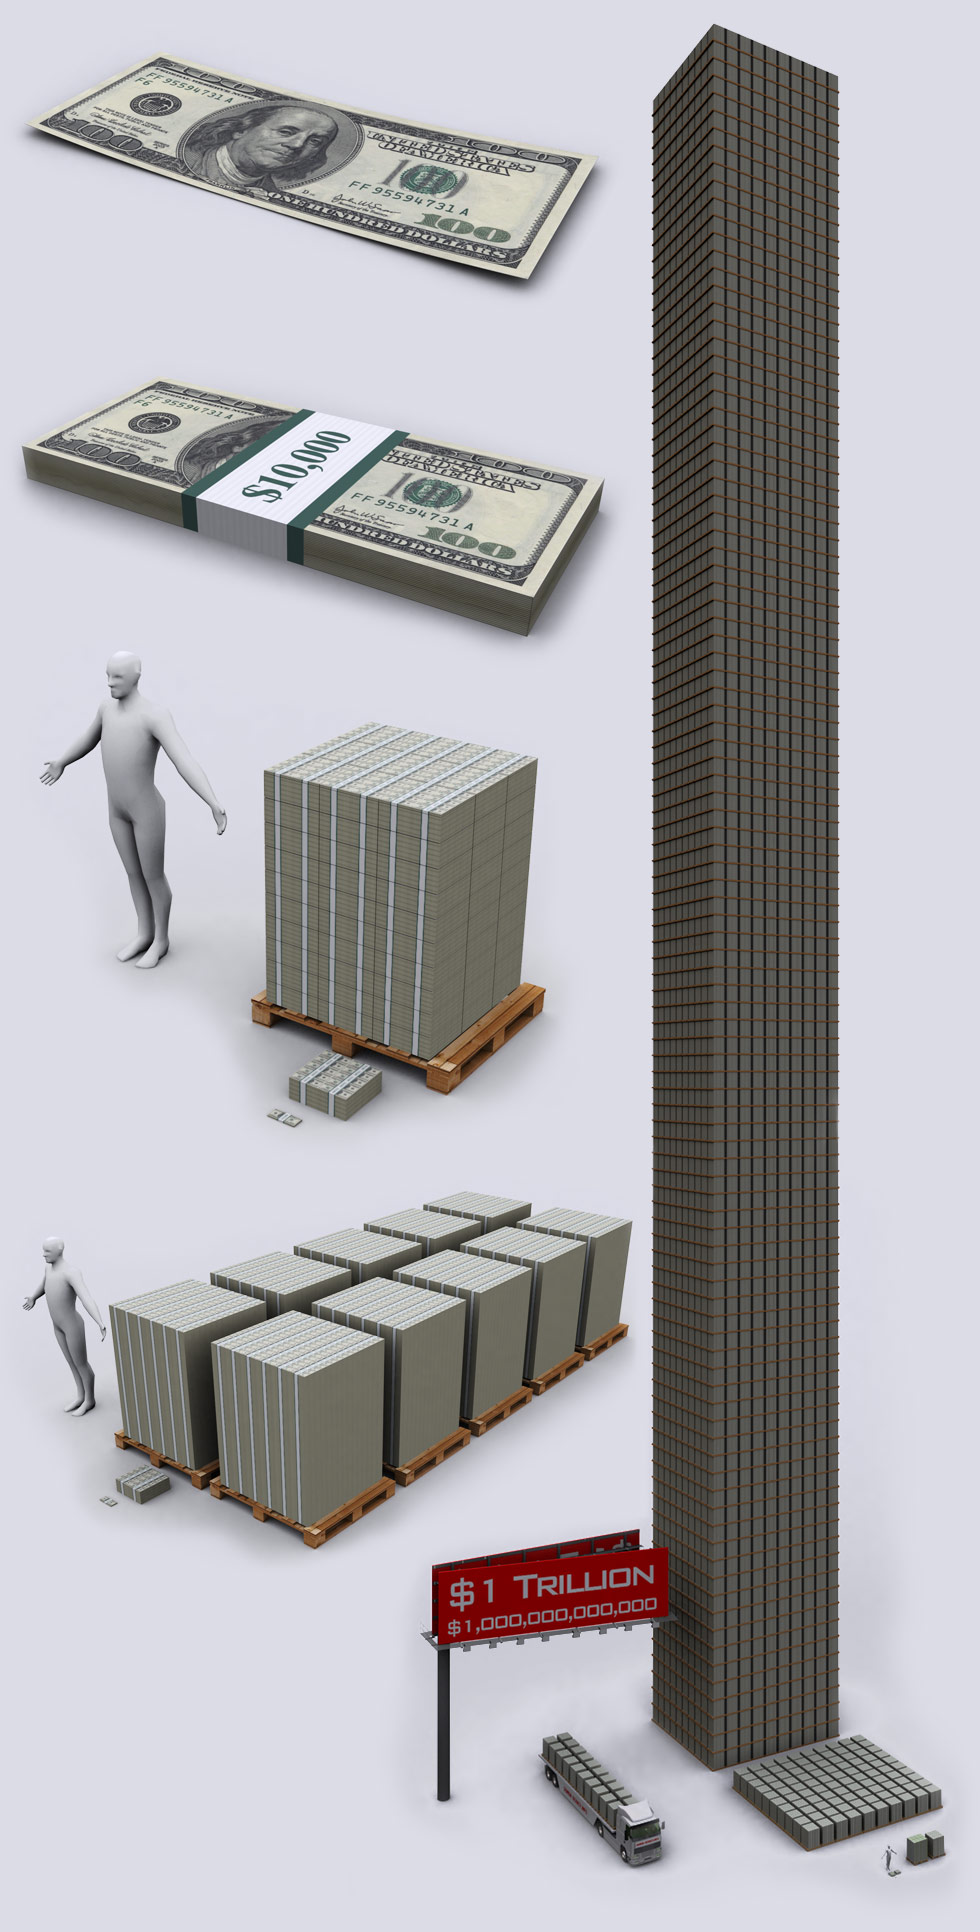 demonocracy.info - How Much the World is Worth & Flow of Money During Financial Crisis - The Liquidity Pyramid